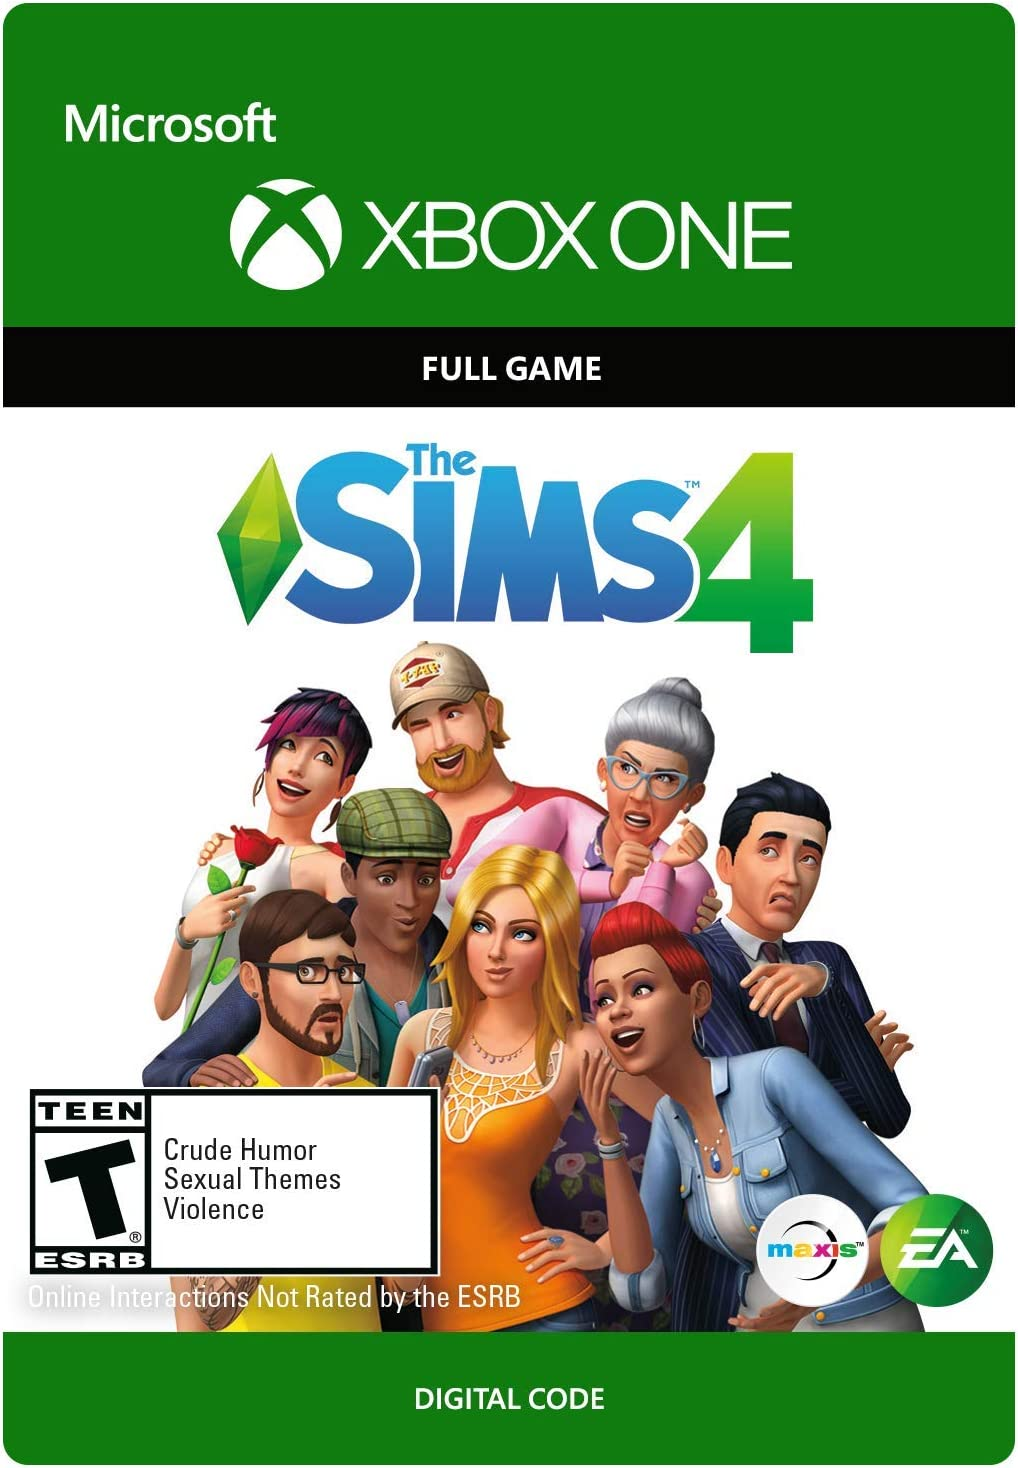 Amazon.com: The SIMS 4 - Xbox One [Digital Code]: Video Games